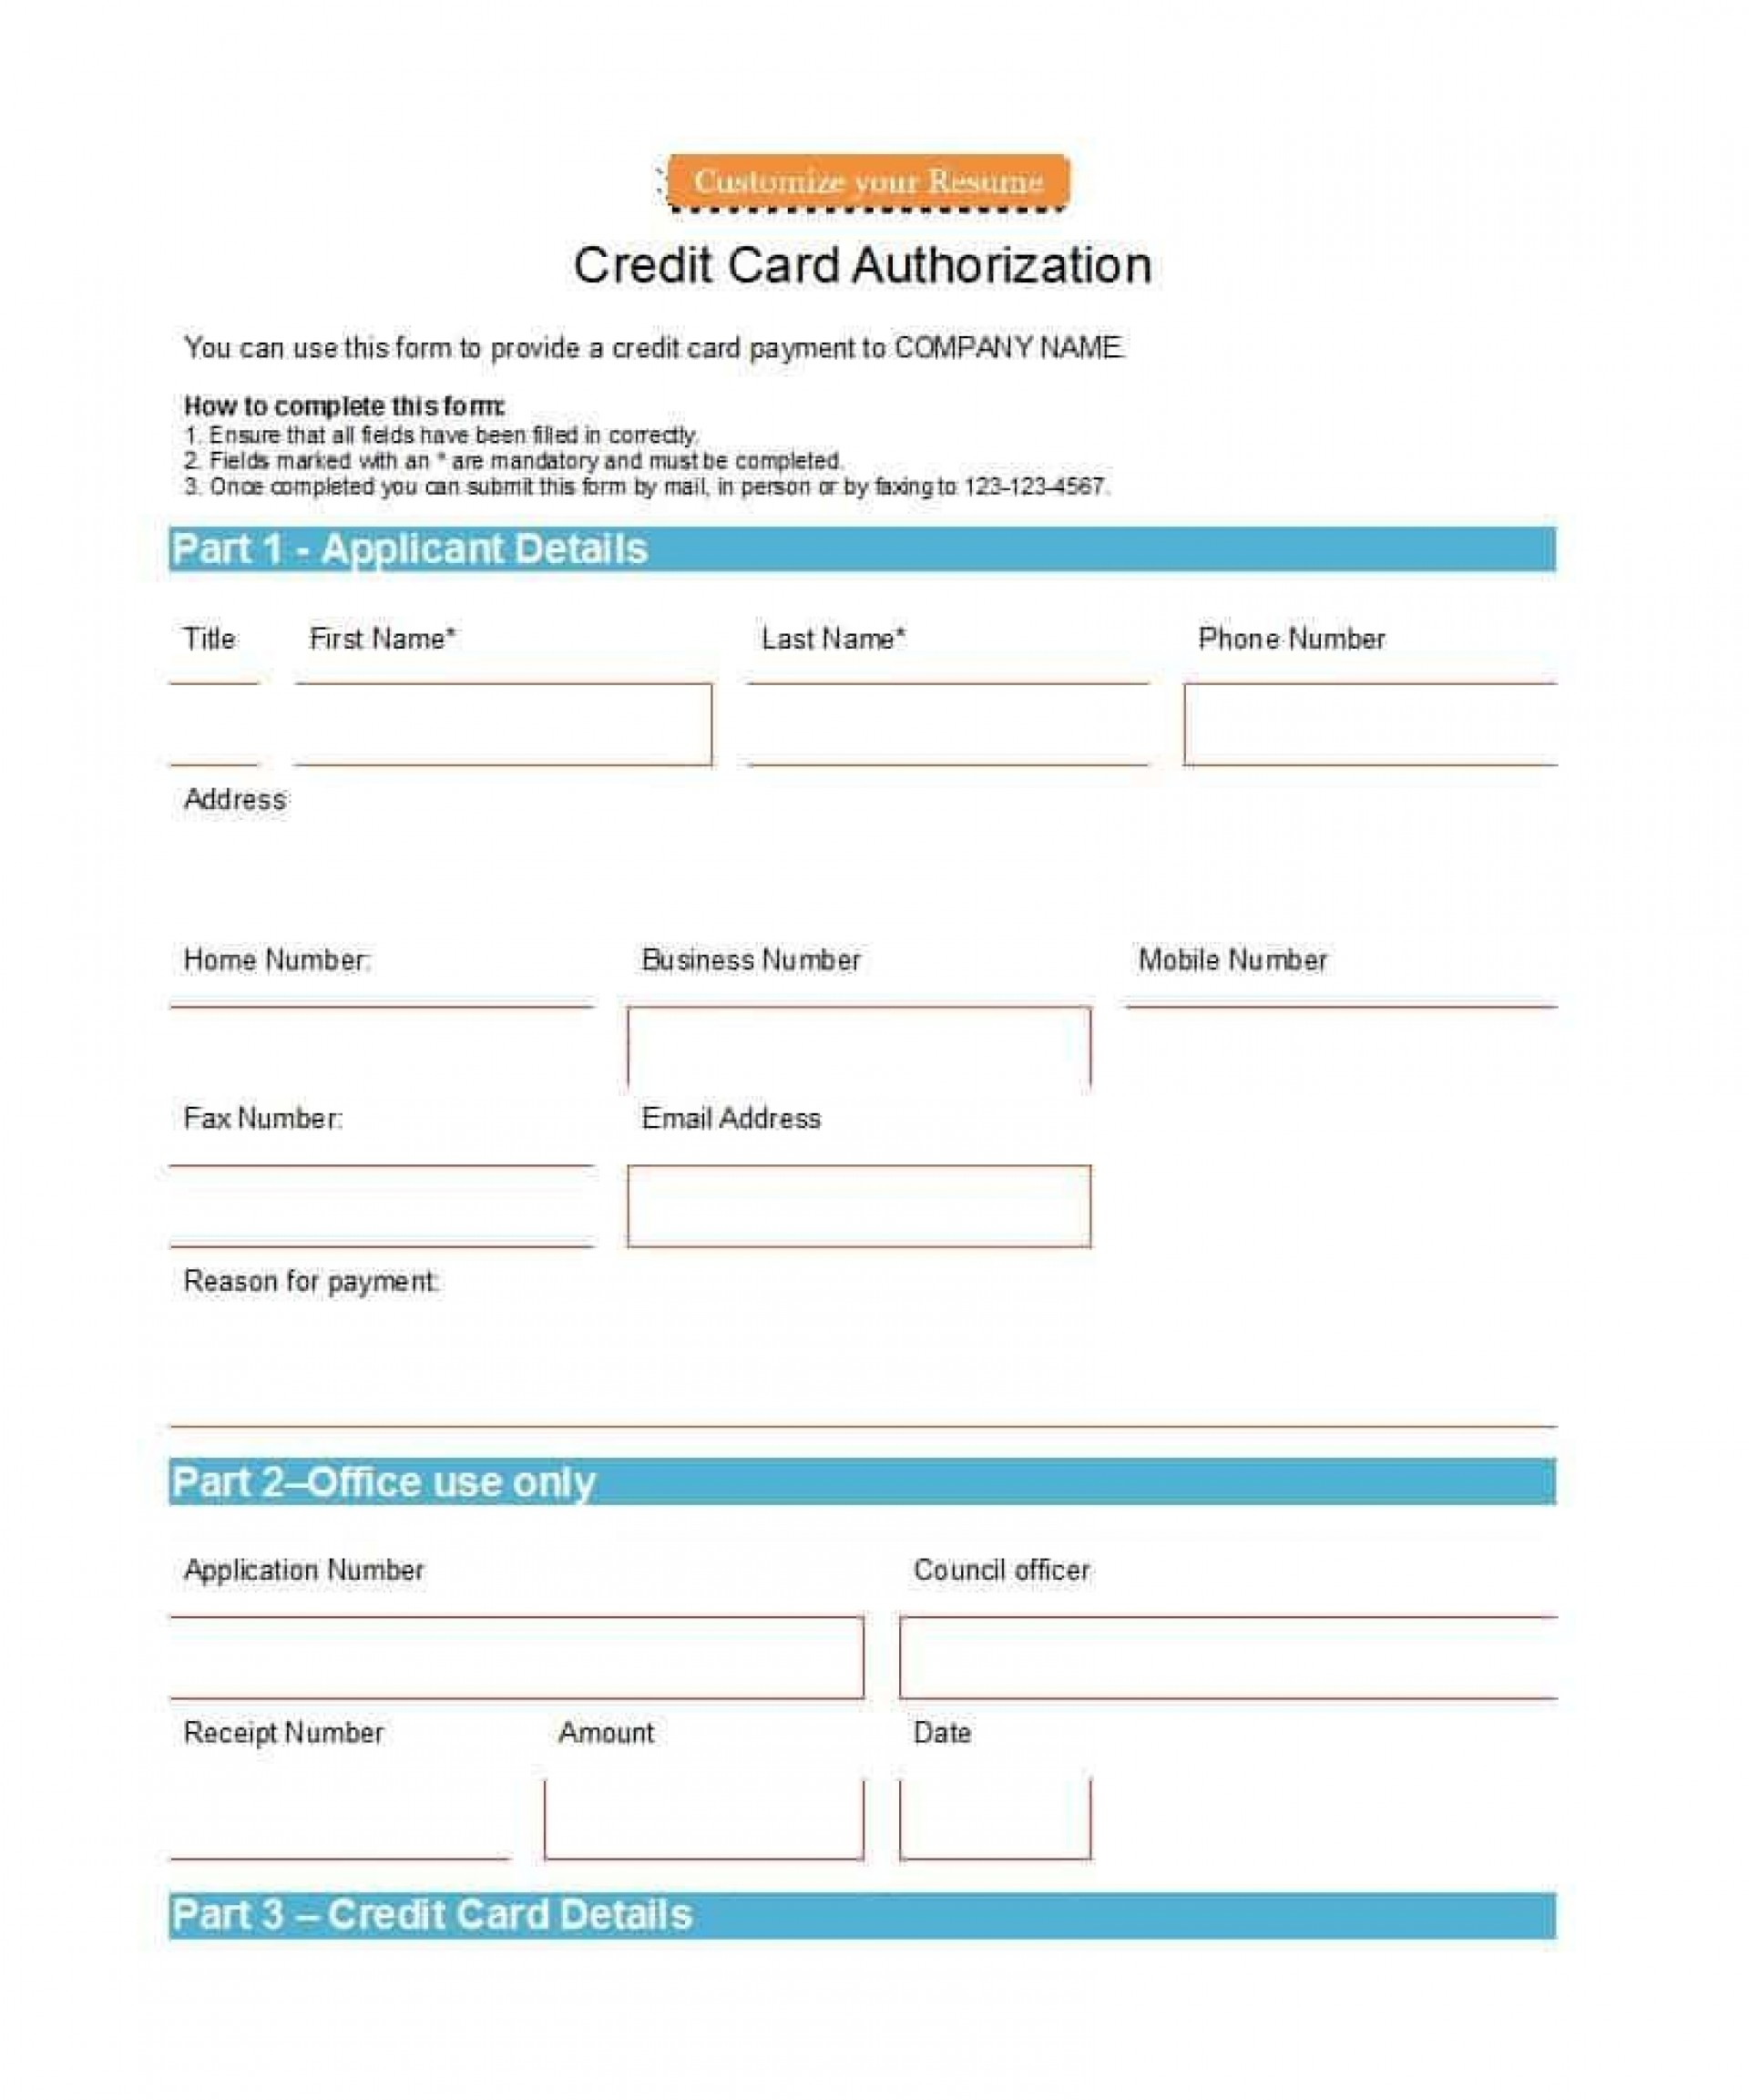 001 Impressive Credit Card Payment Form Template Html Inspiration 1920